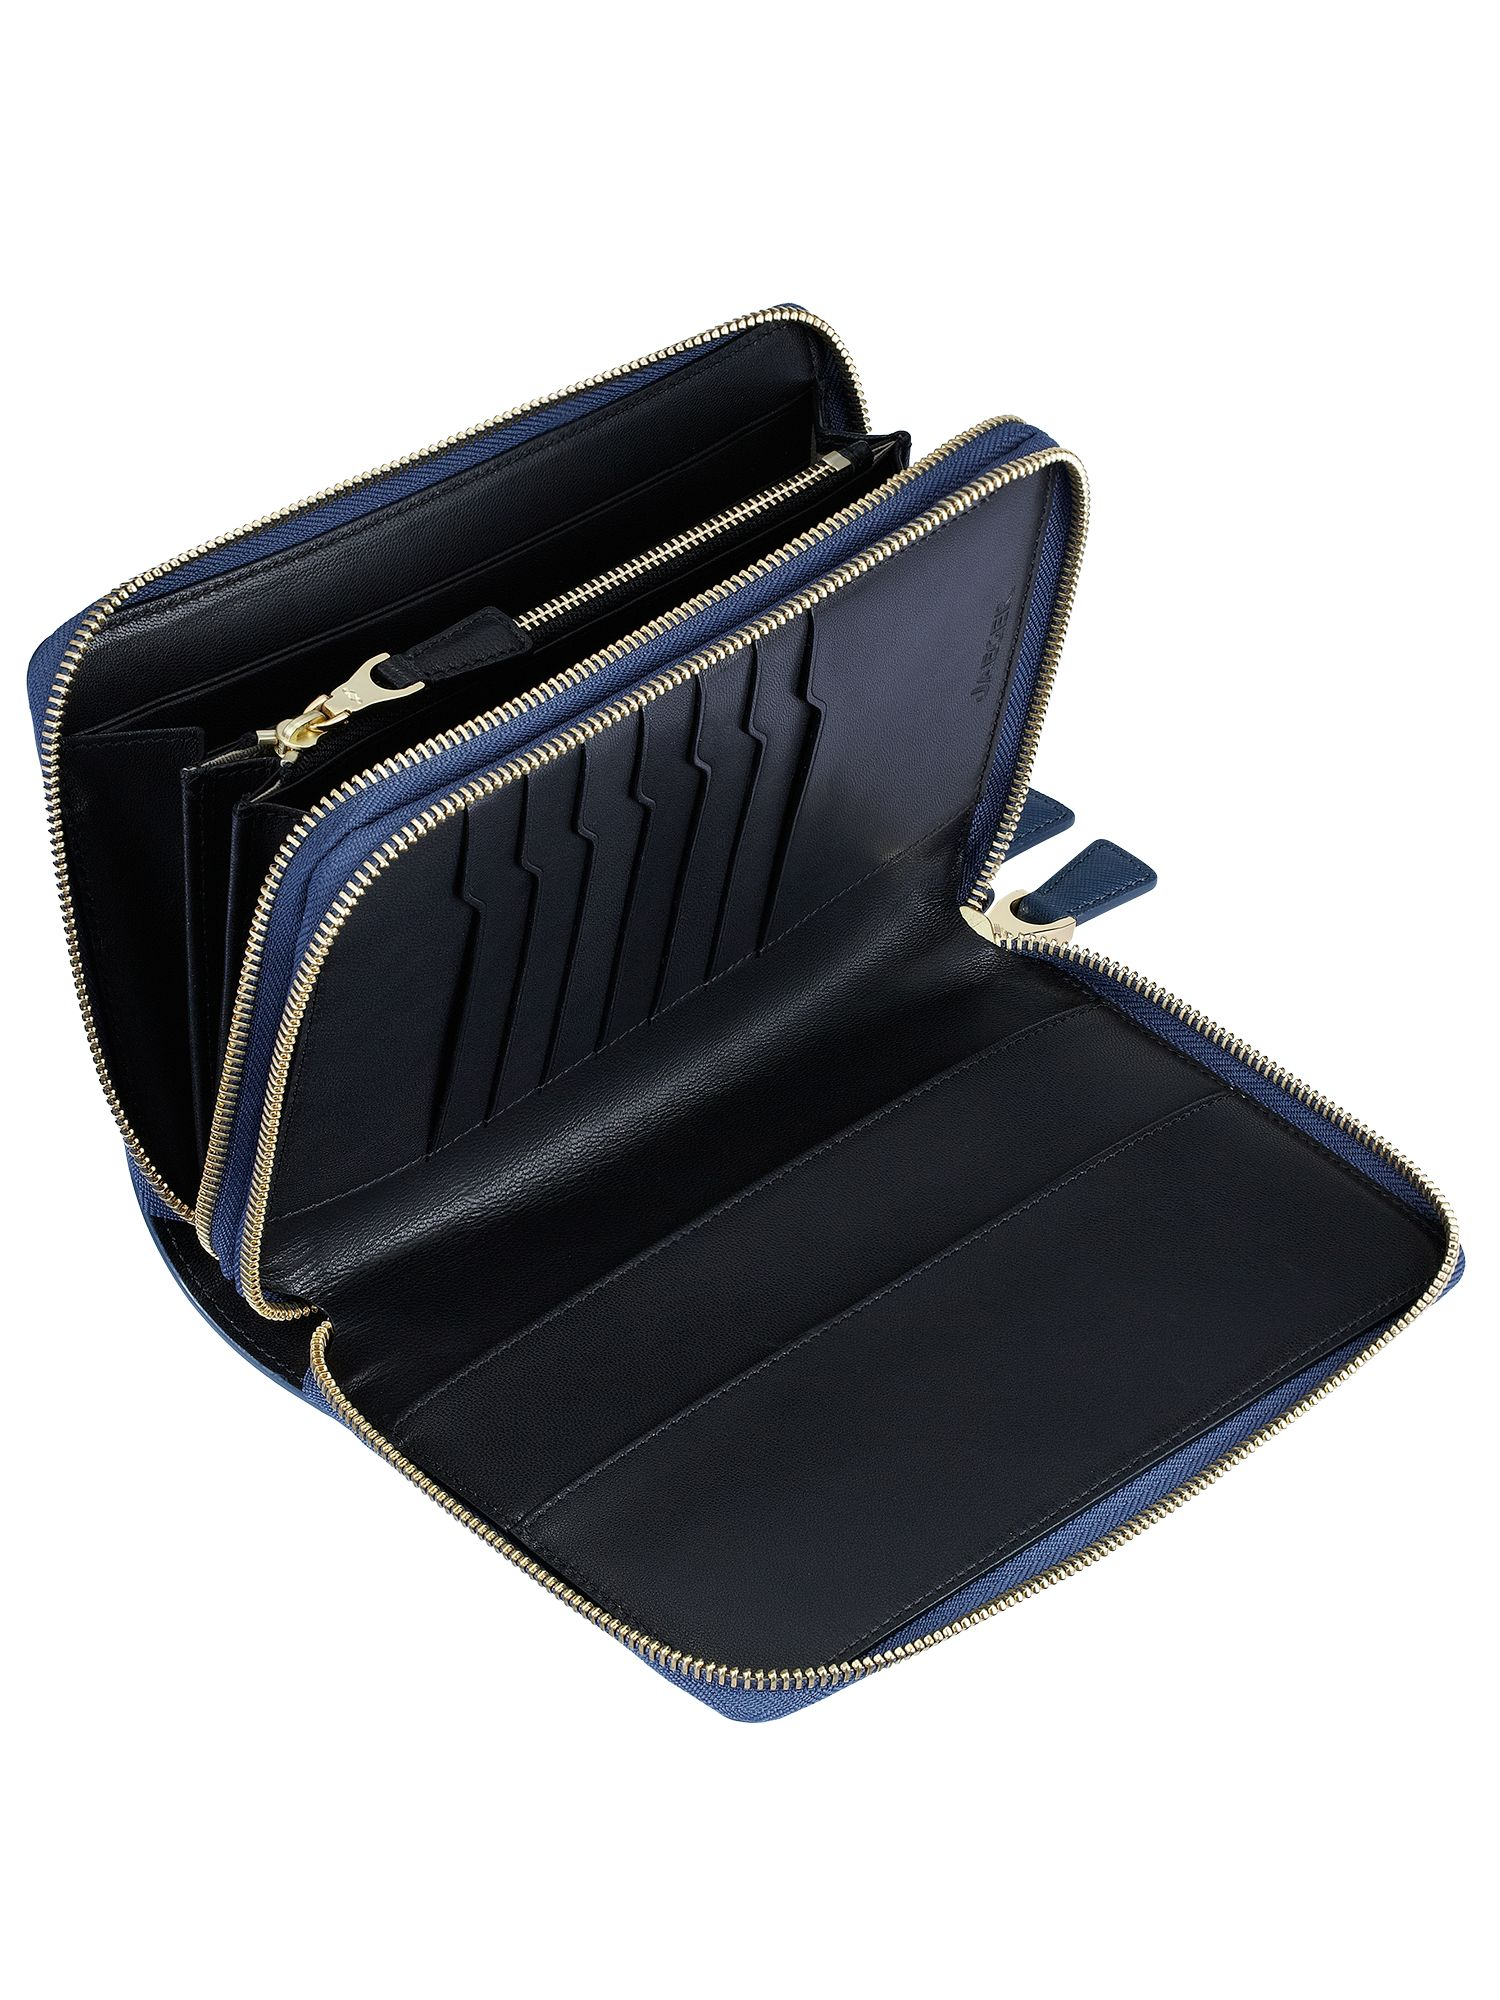 Jaeger: Webb Traveller Clutch